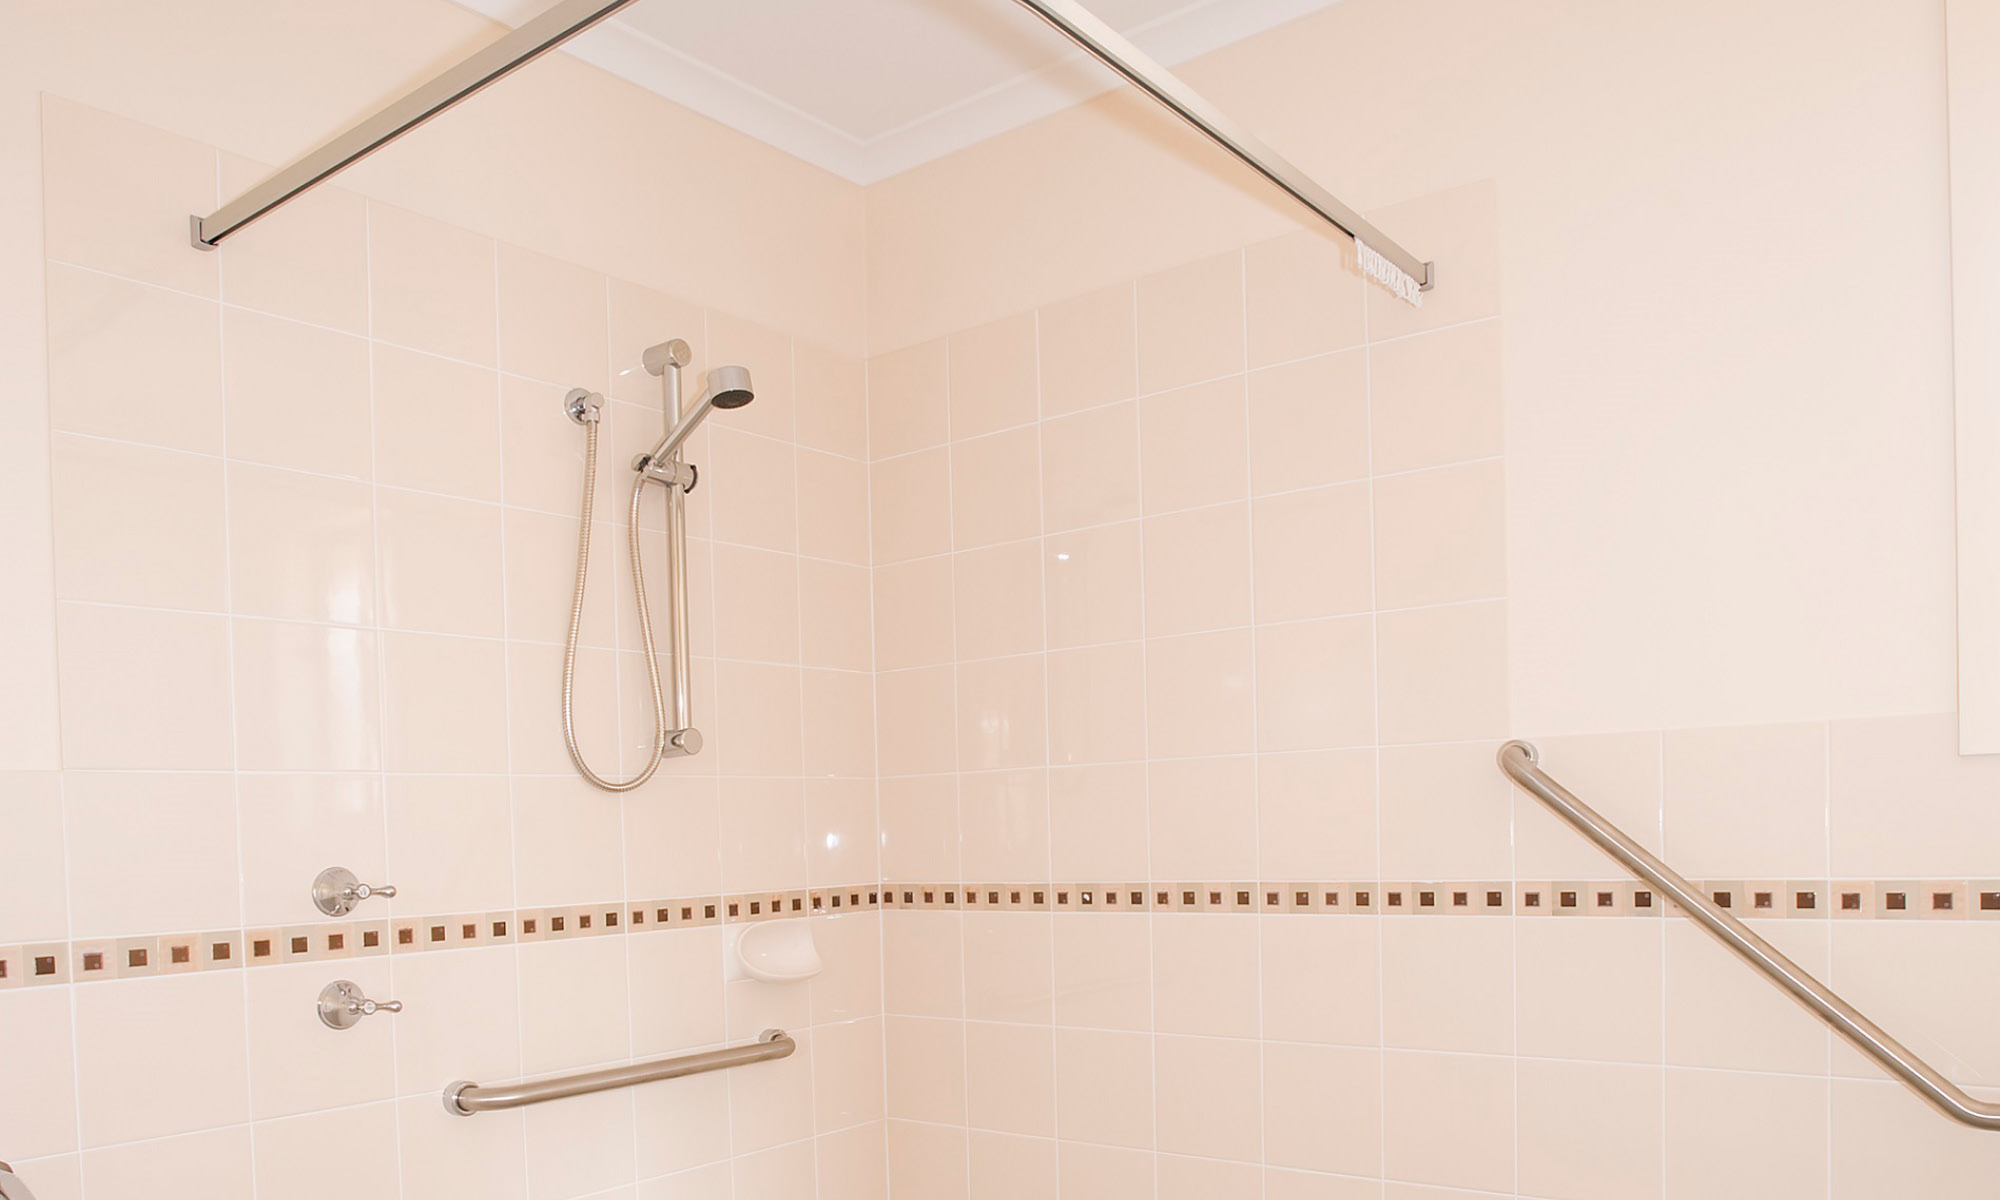 Normus Urban Projects Specialised Disability Bathroom